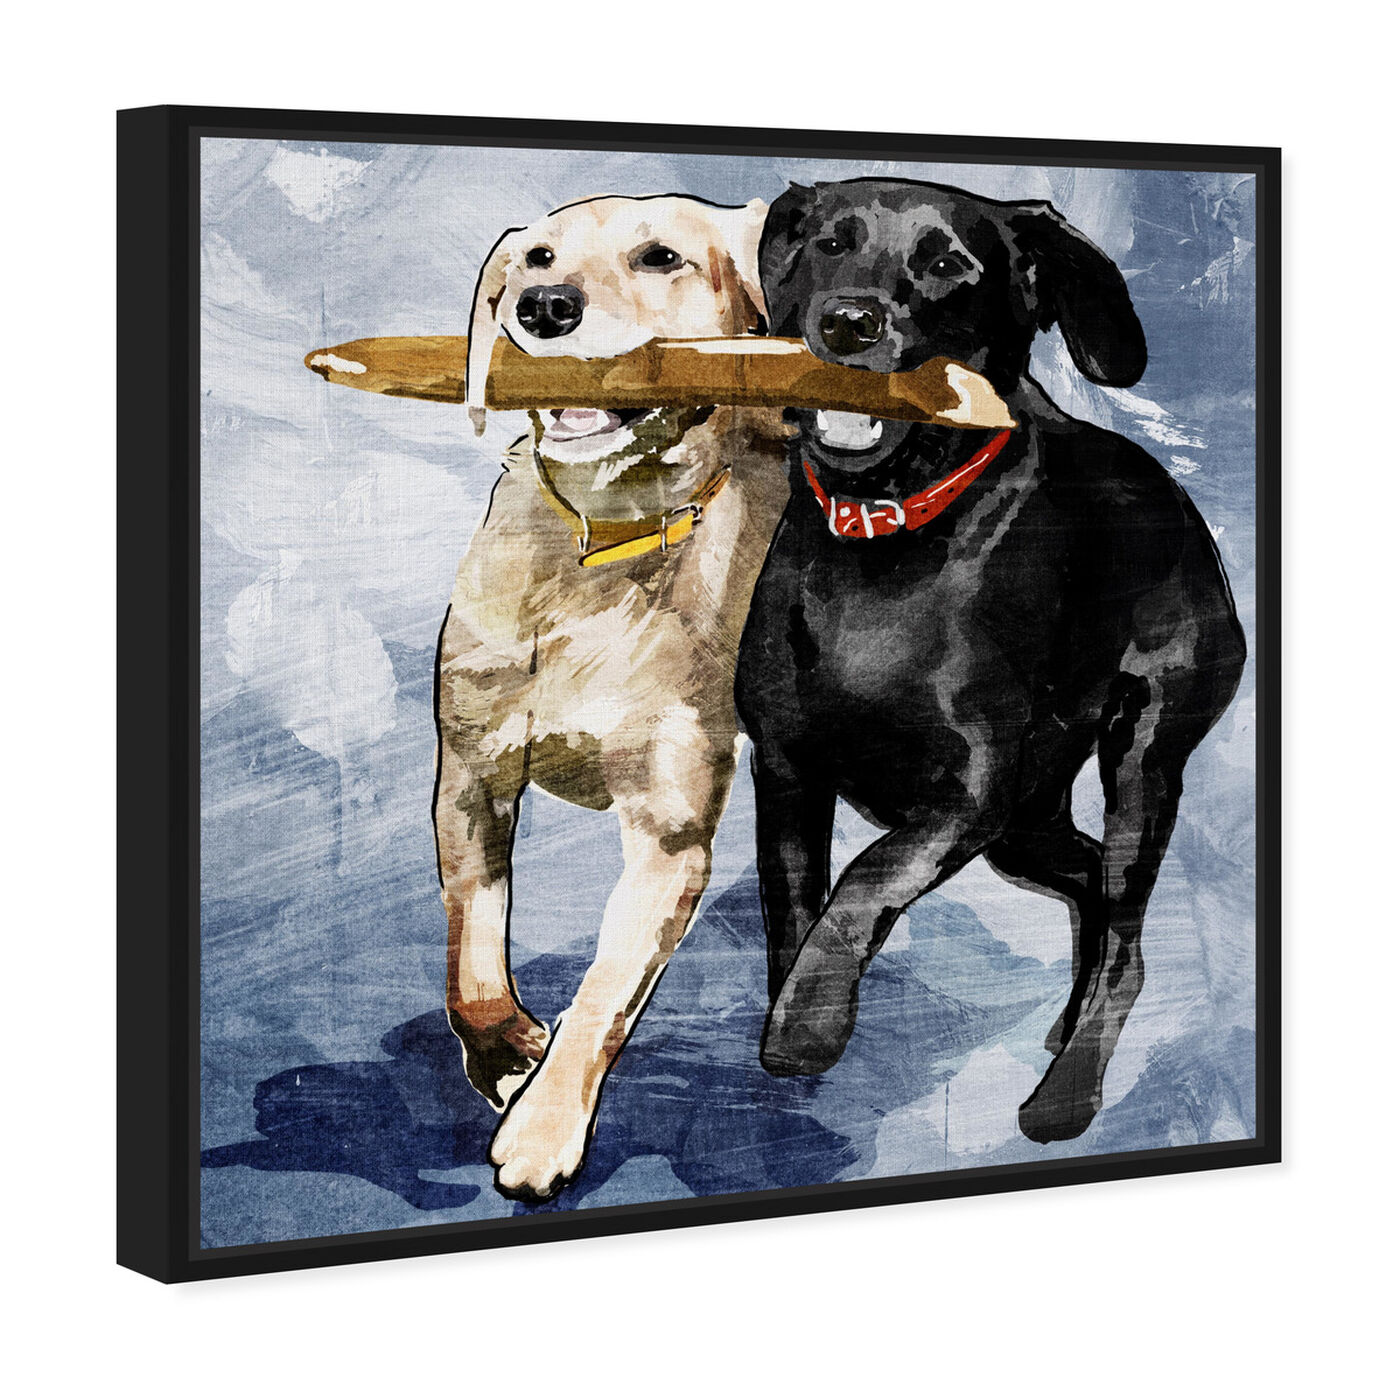 Angled view of Playtime Blue featuring animals and dogs and puppies art.